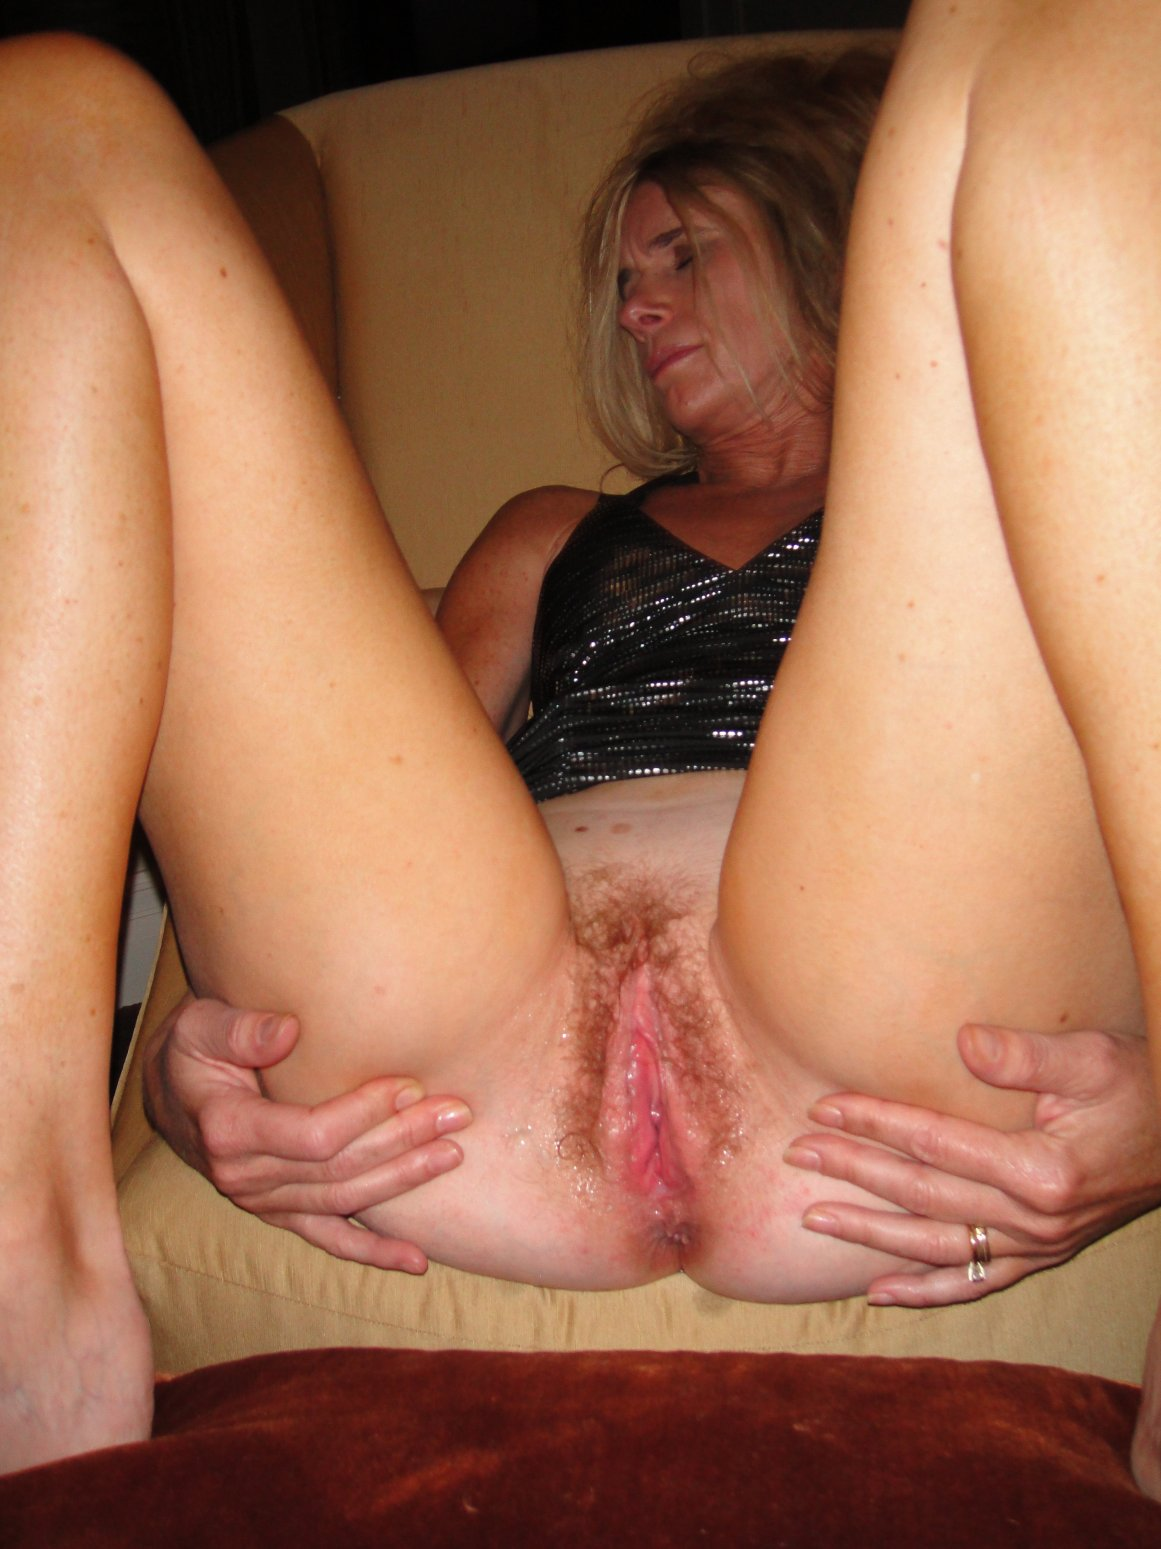 Amateur blonde wife creampie agree, useful